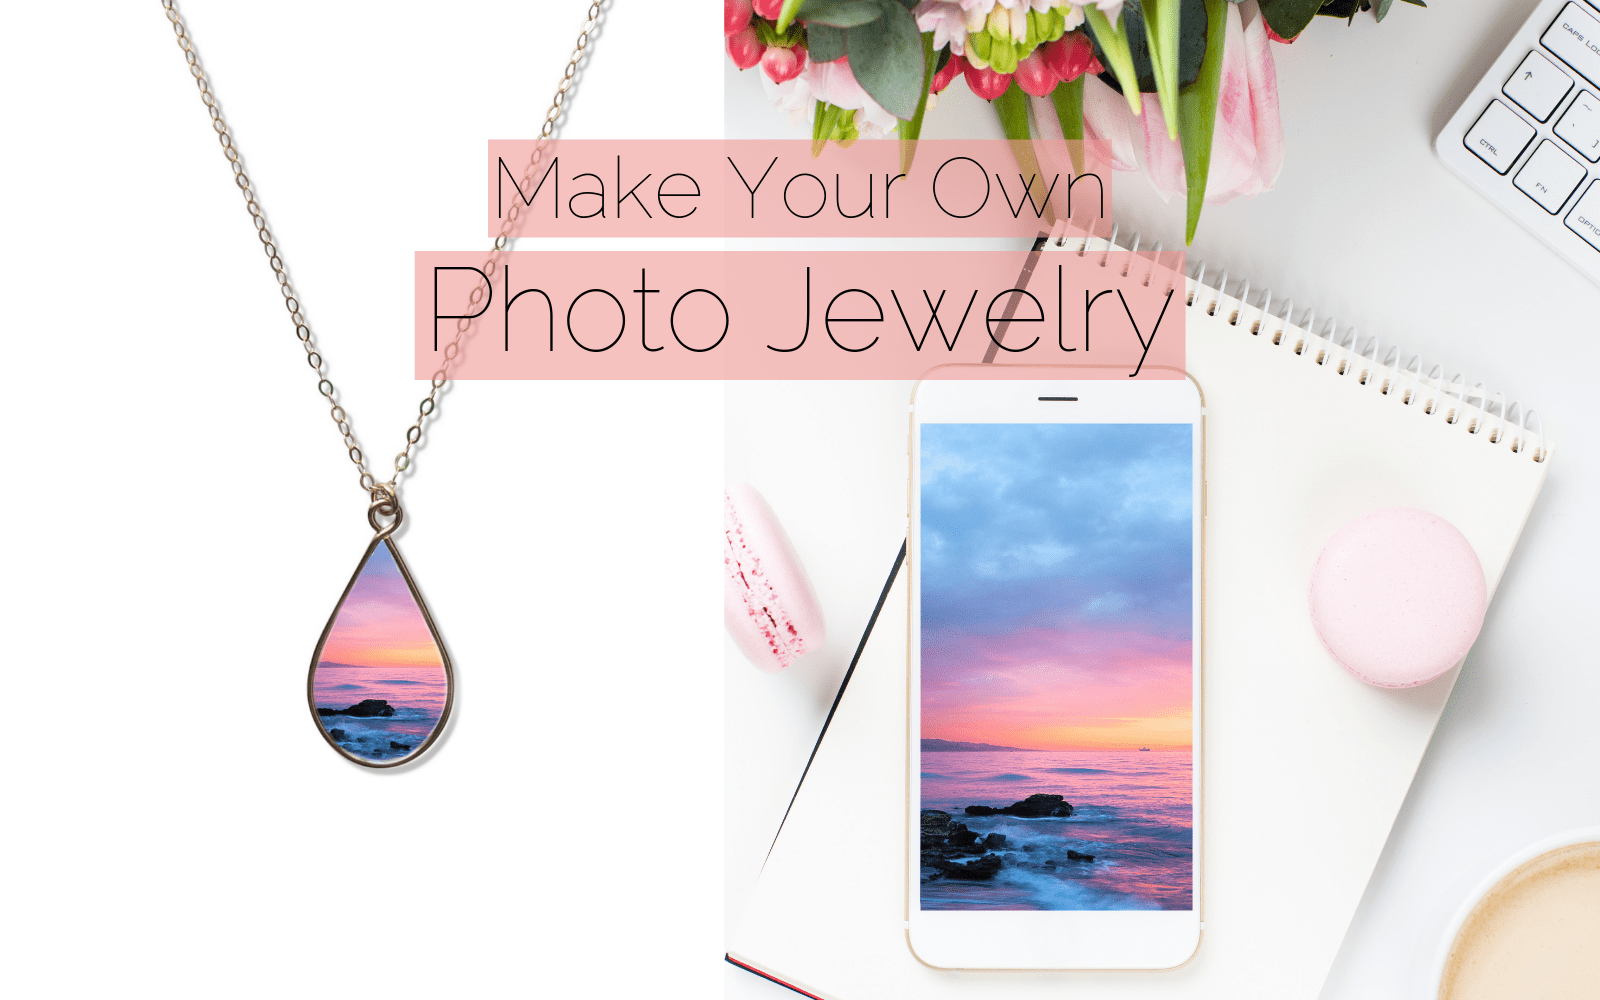 How to Choose The Best Image for Your Custom Photo Jewelry